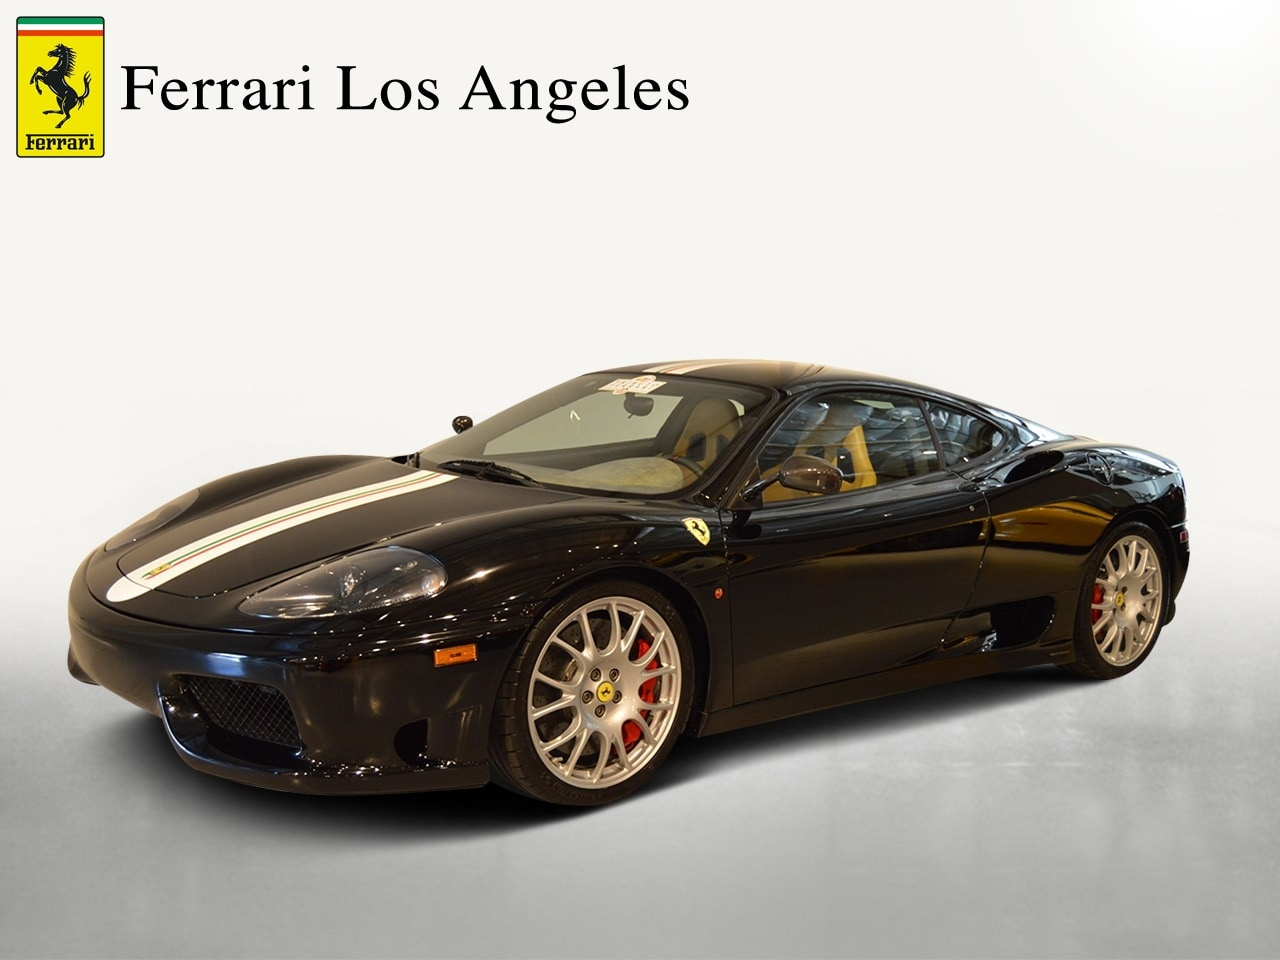 used 2004 ferrari challenge stradale for sale van nuys ca ferrari. Cars Review. Best American Auto & Cars Review